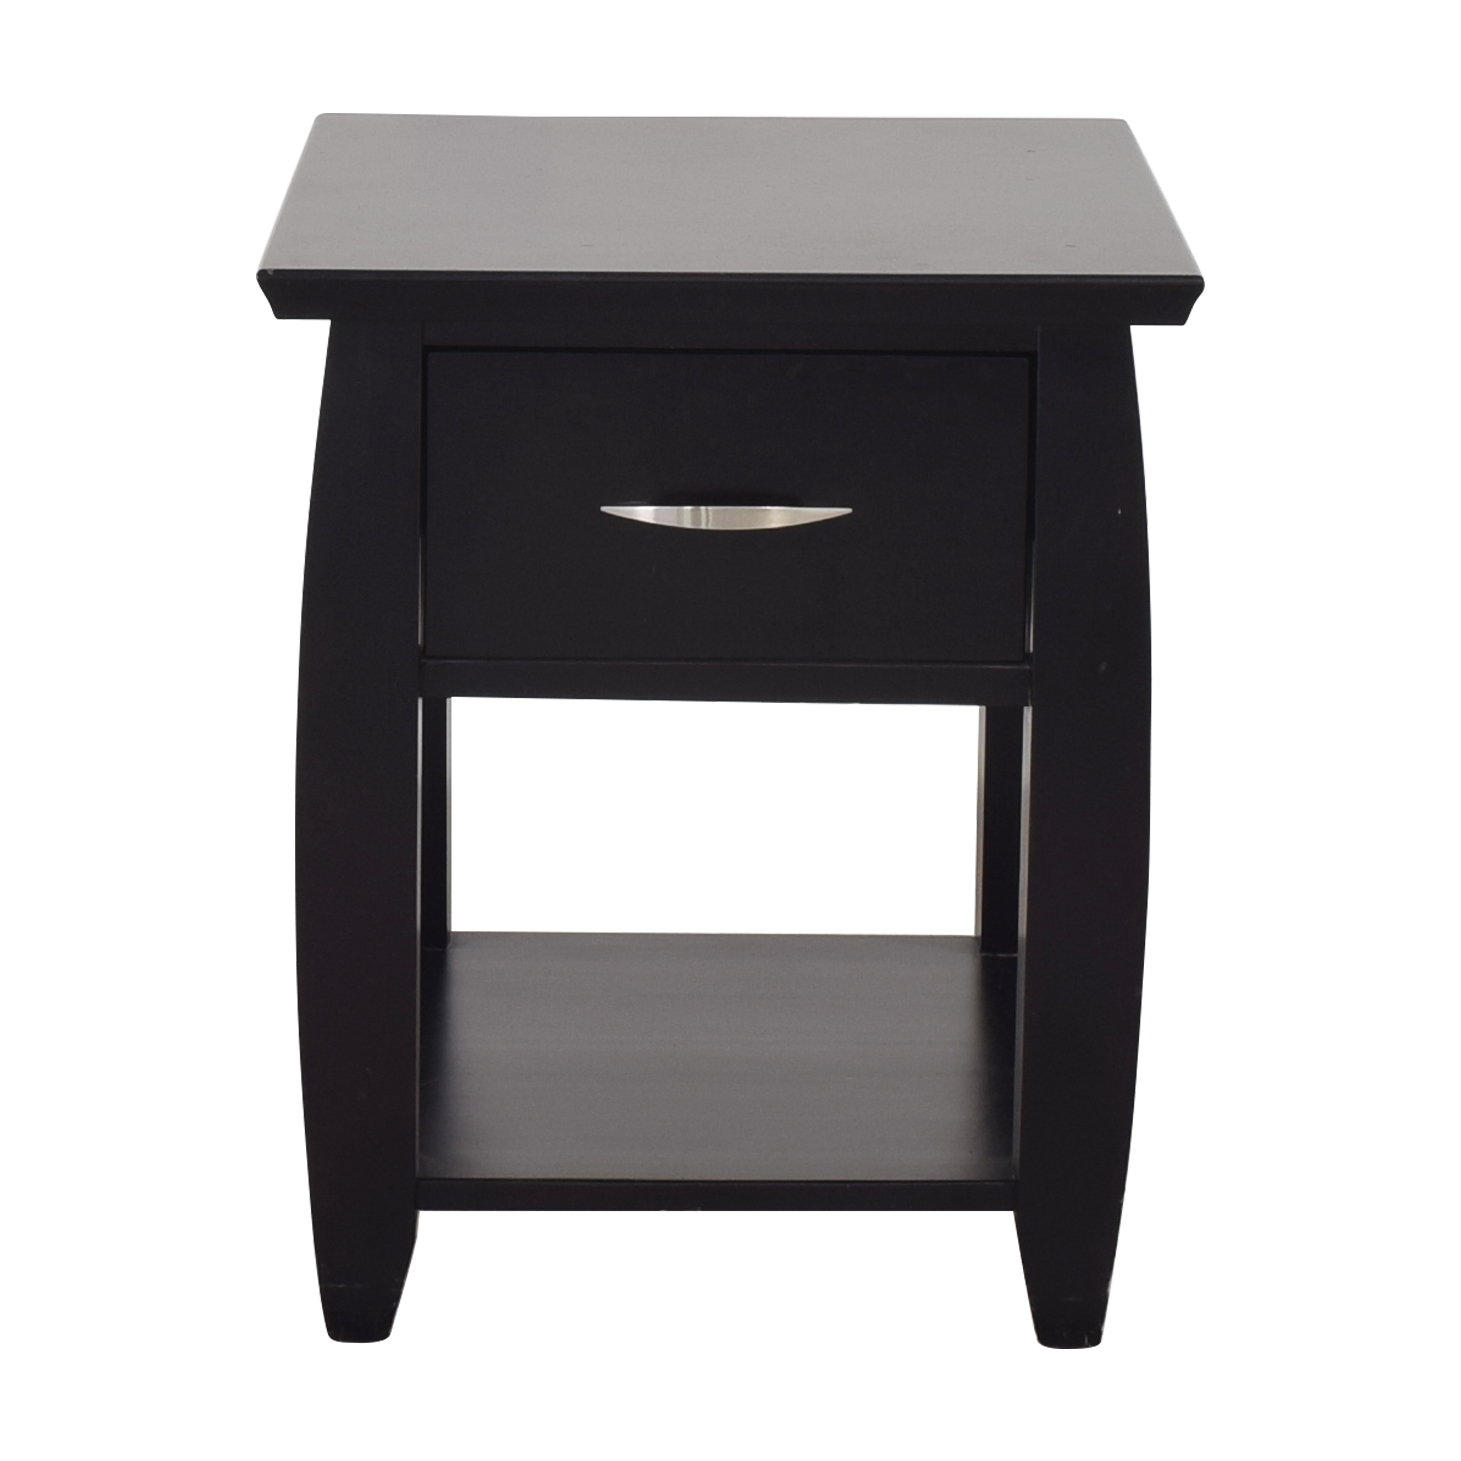 Door Store Door Store Single Drawer Nightstand second hand